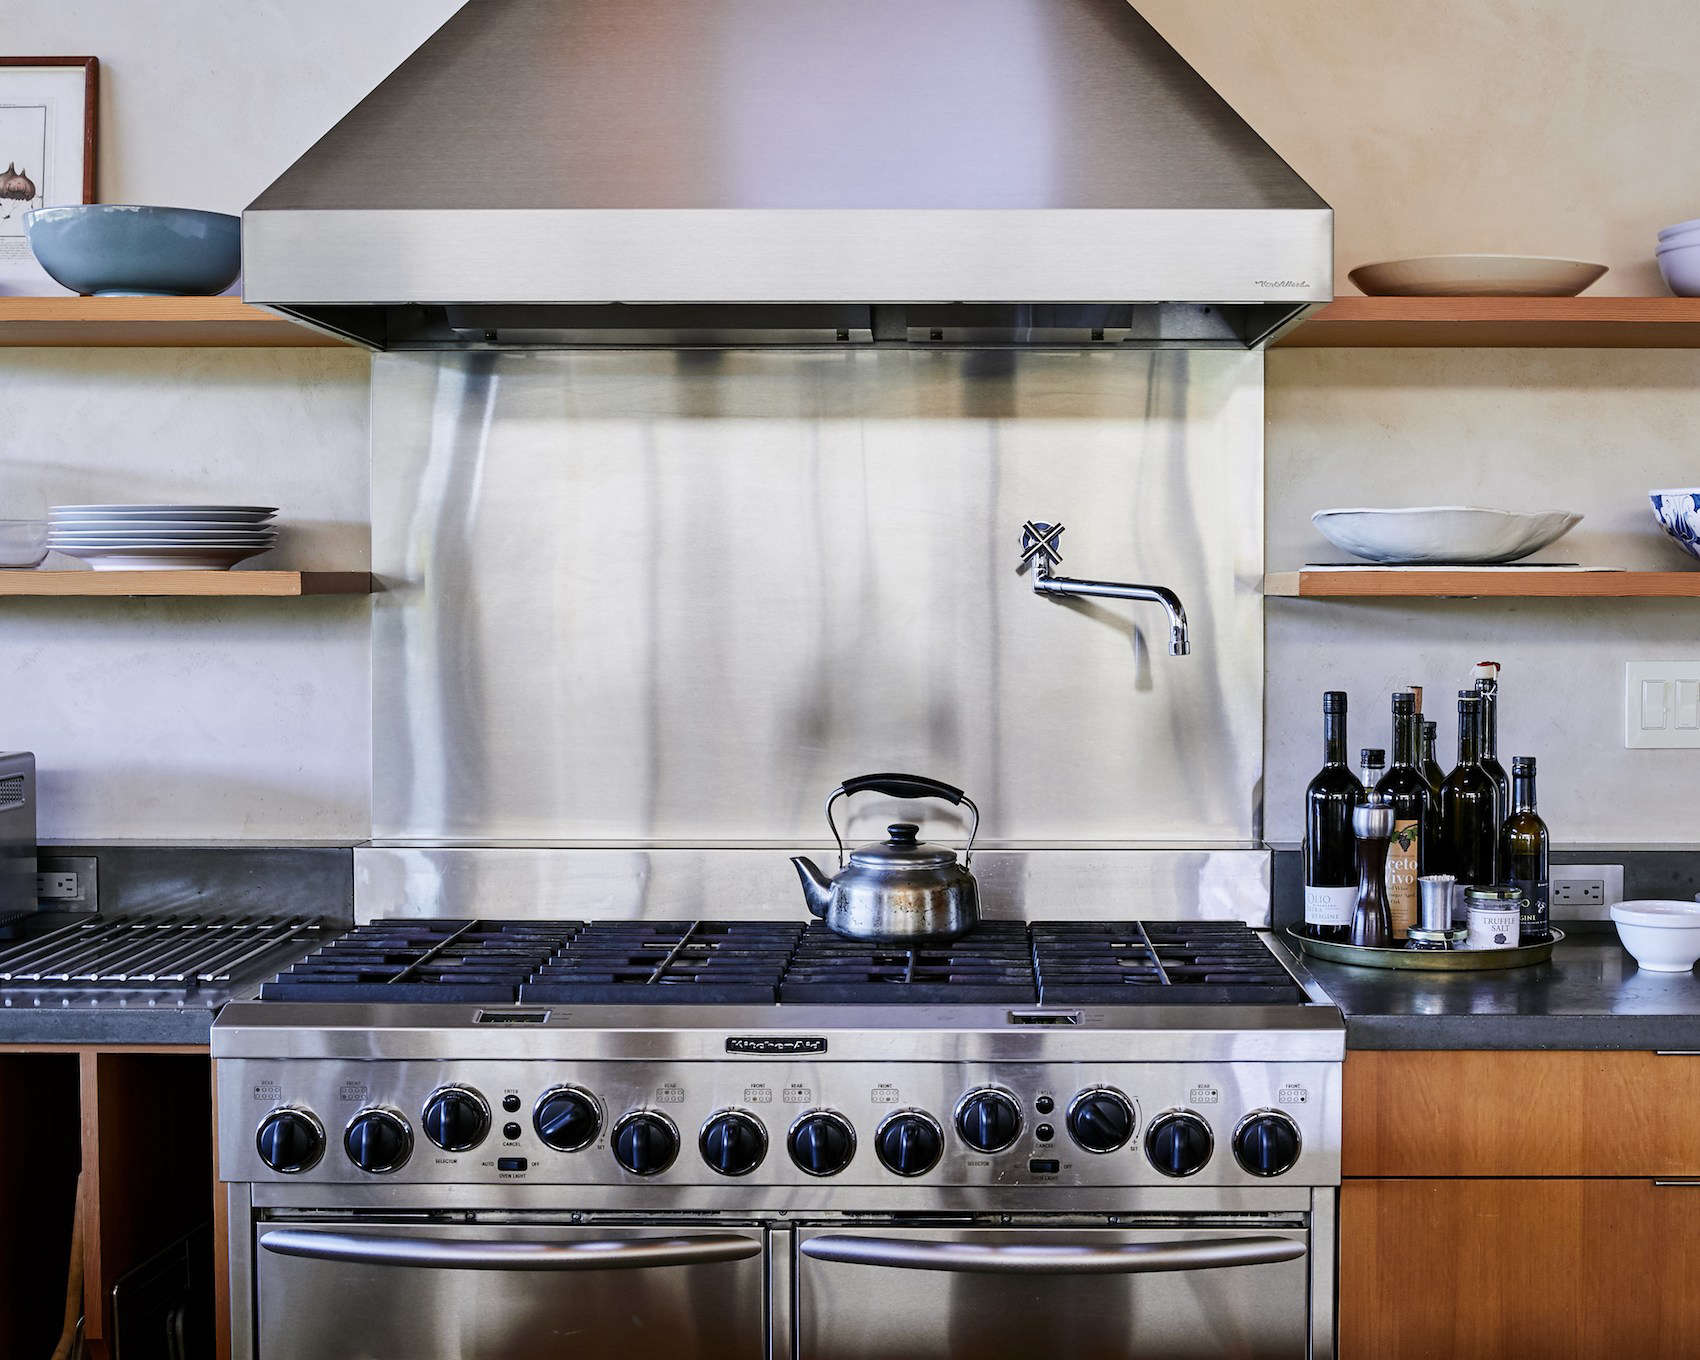 To give your stainless steel surfaces a shine, simply buff them with some olive oil, says Rapinchuk. Photograph byDaniel Dentfor Remodelista.